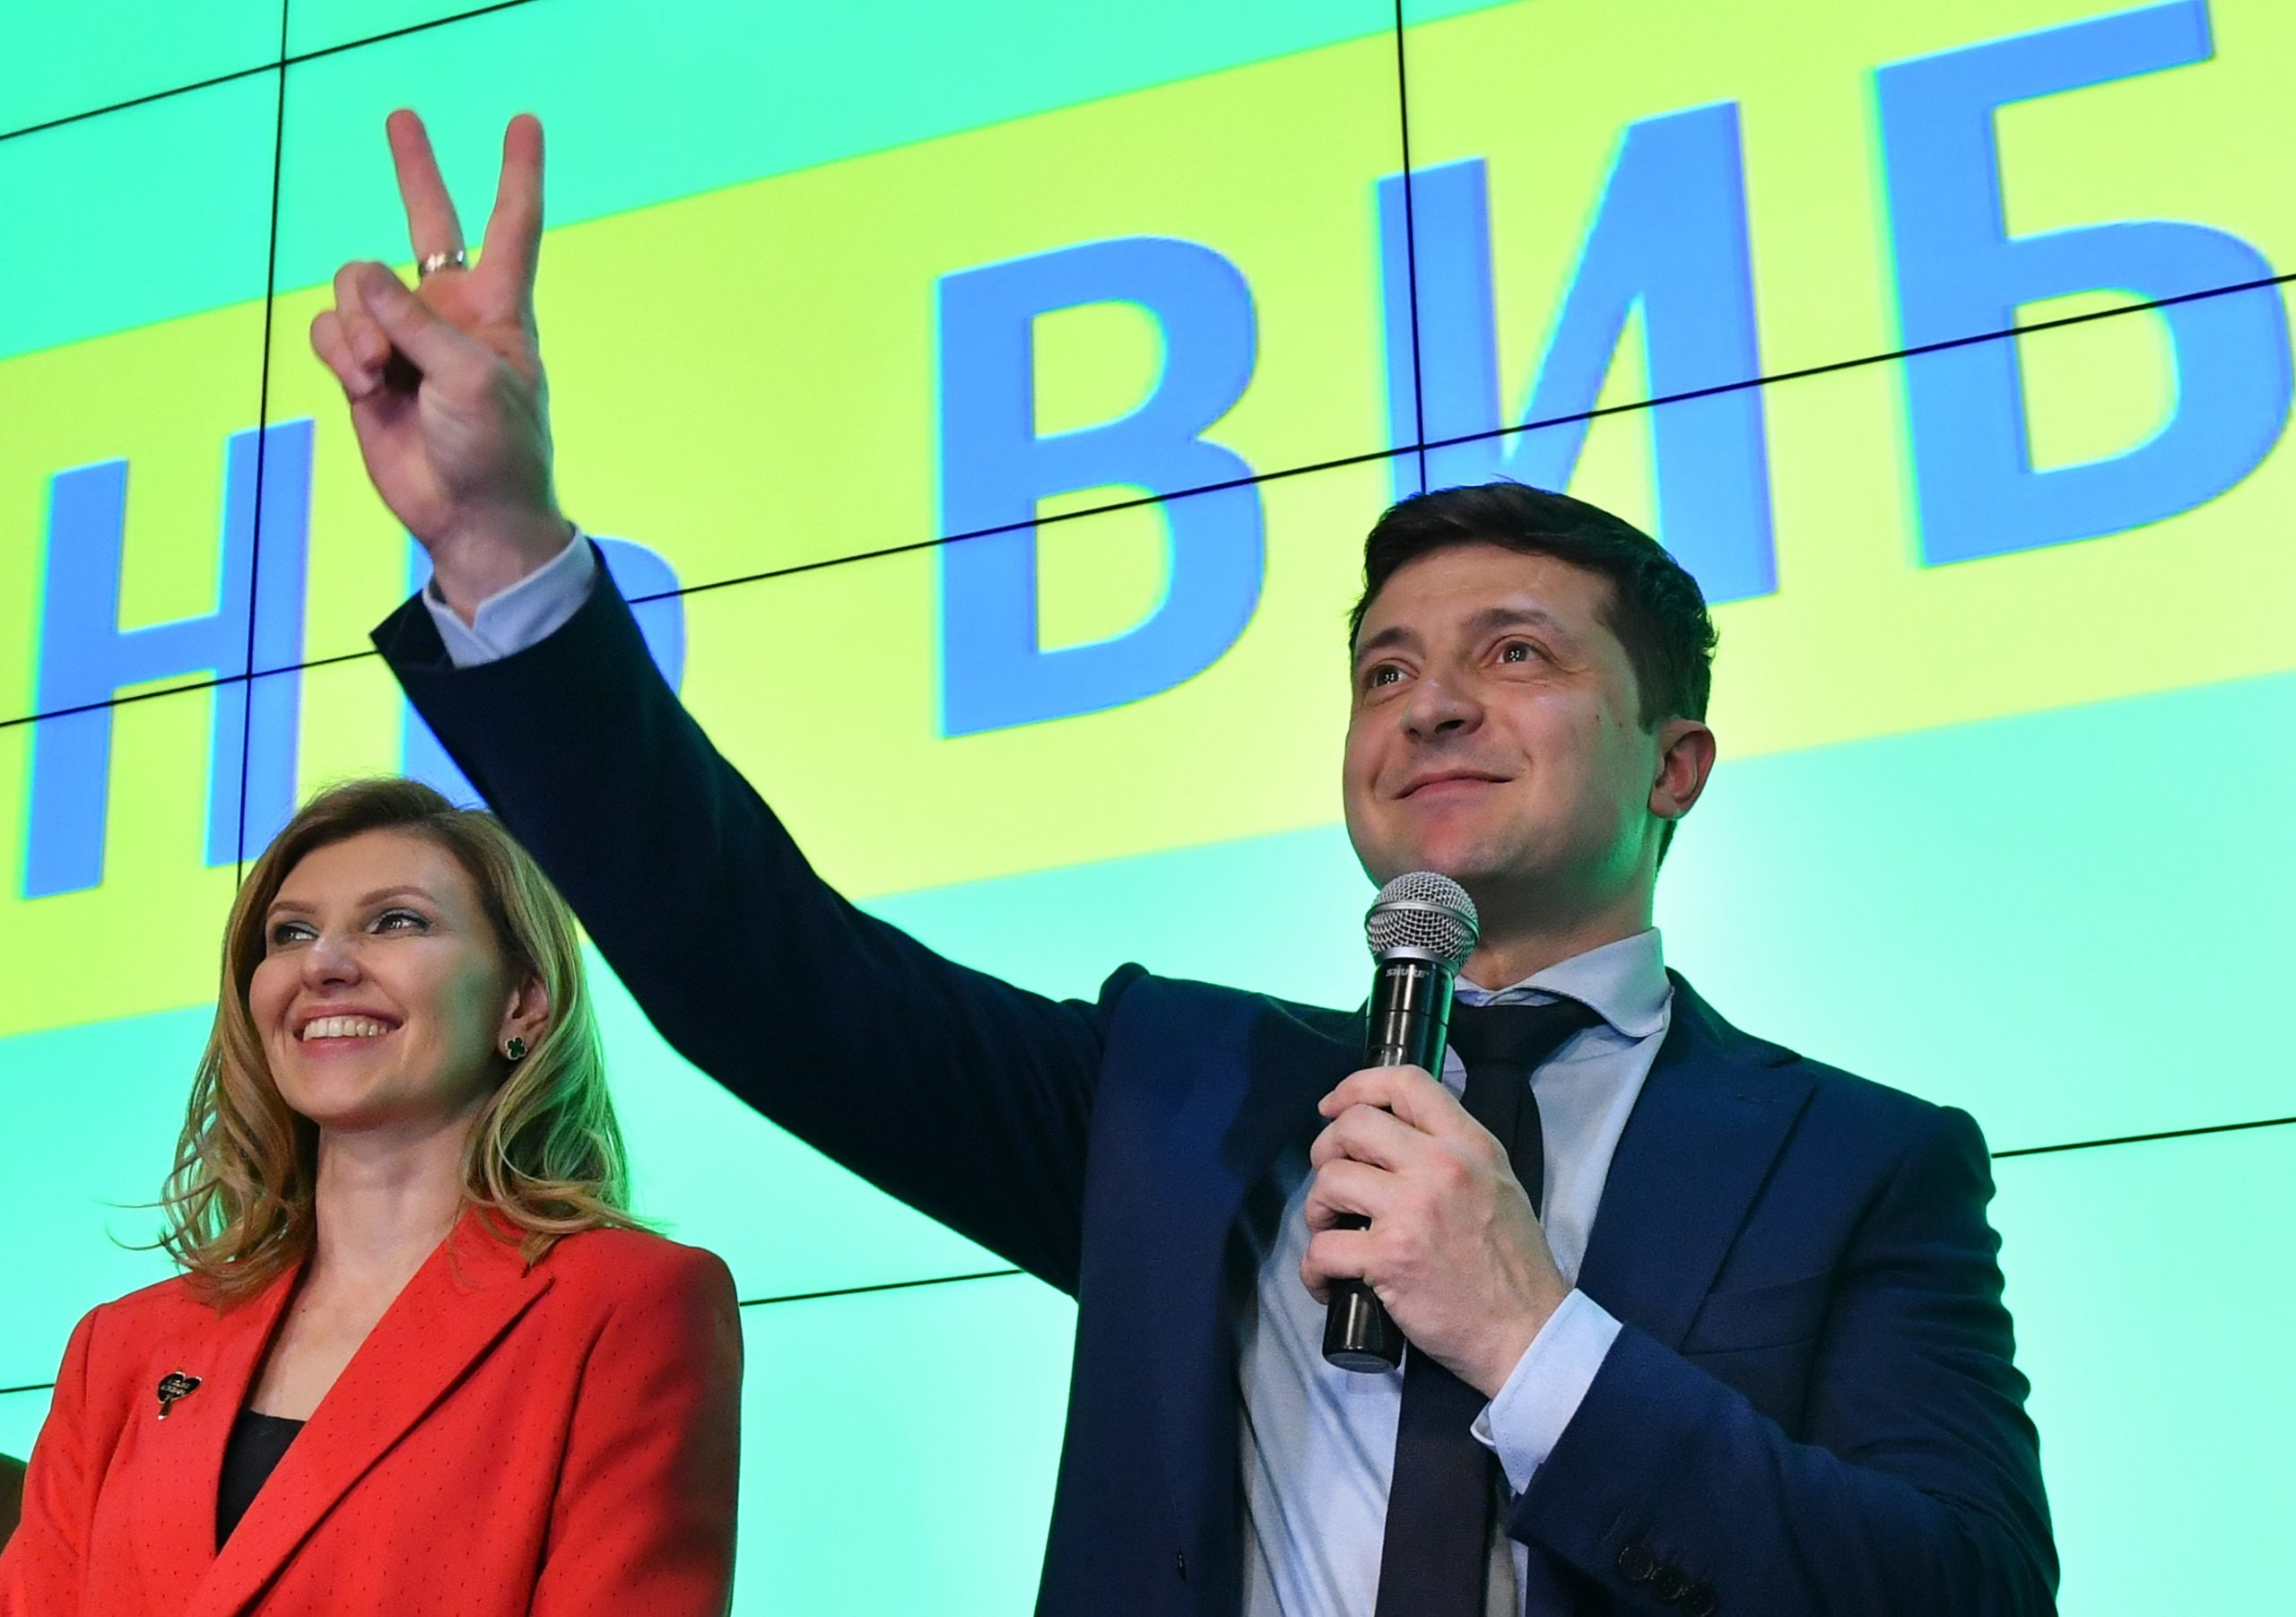 Ukraine is poised to elect a comedian as its next president